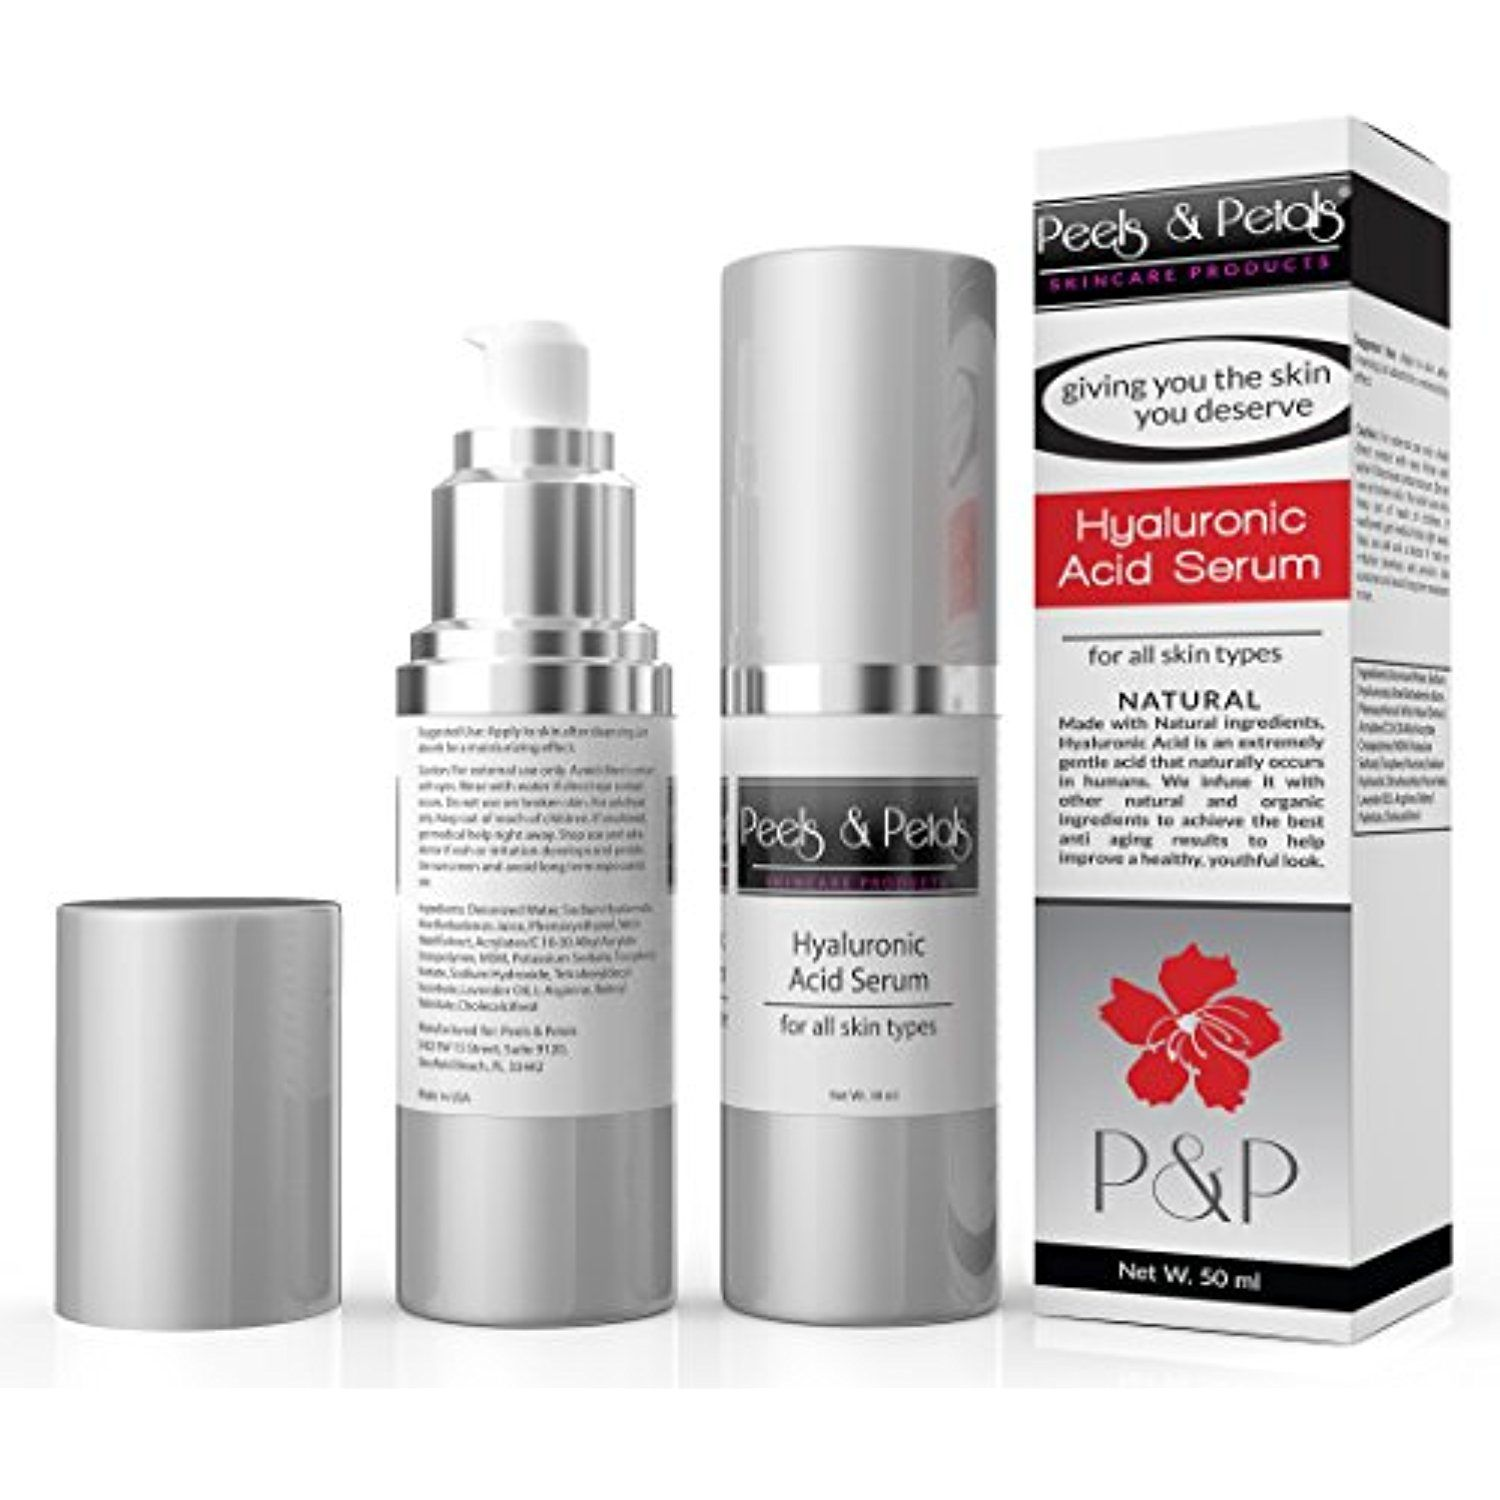 Peels and petals paraben free hyaluronic acid serum for skin eyes